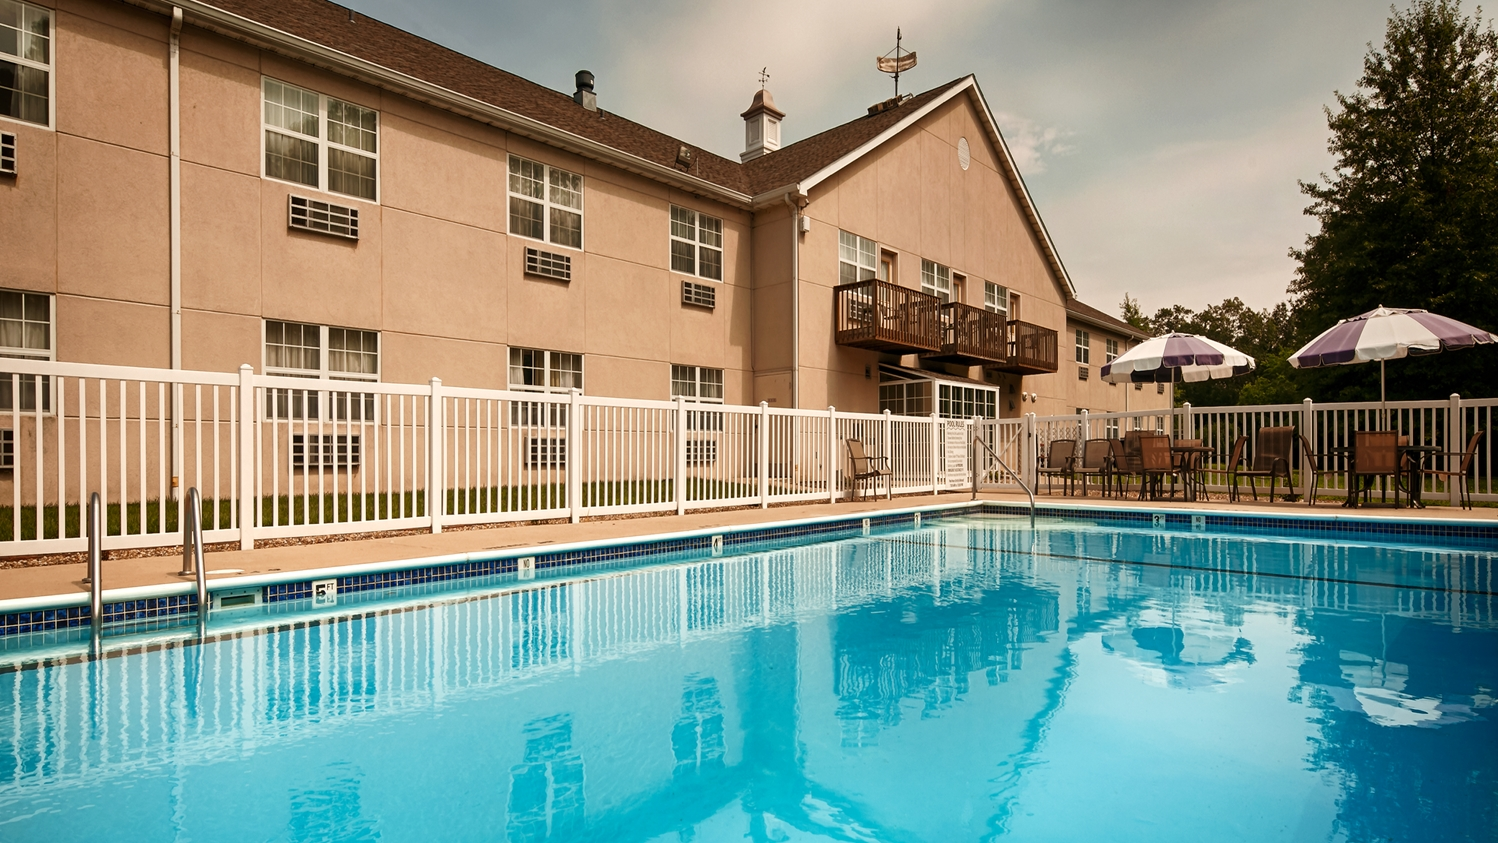 Best western reids inn chester il see discounts - Hotels in chester with swimming pool ...